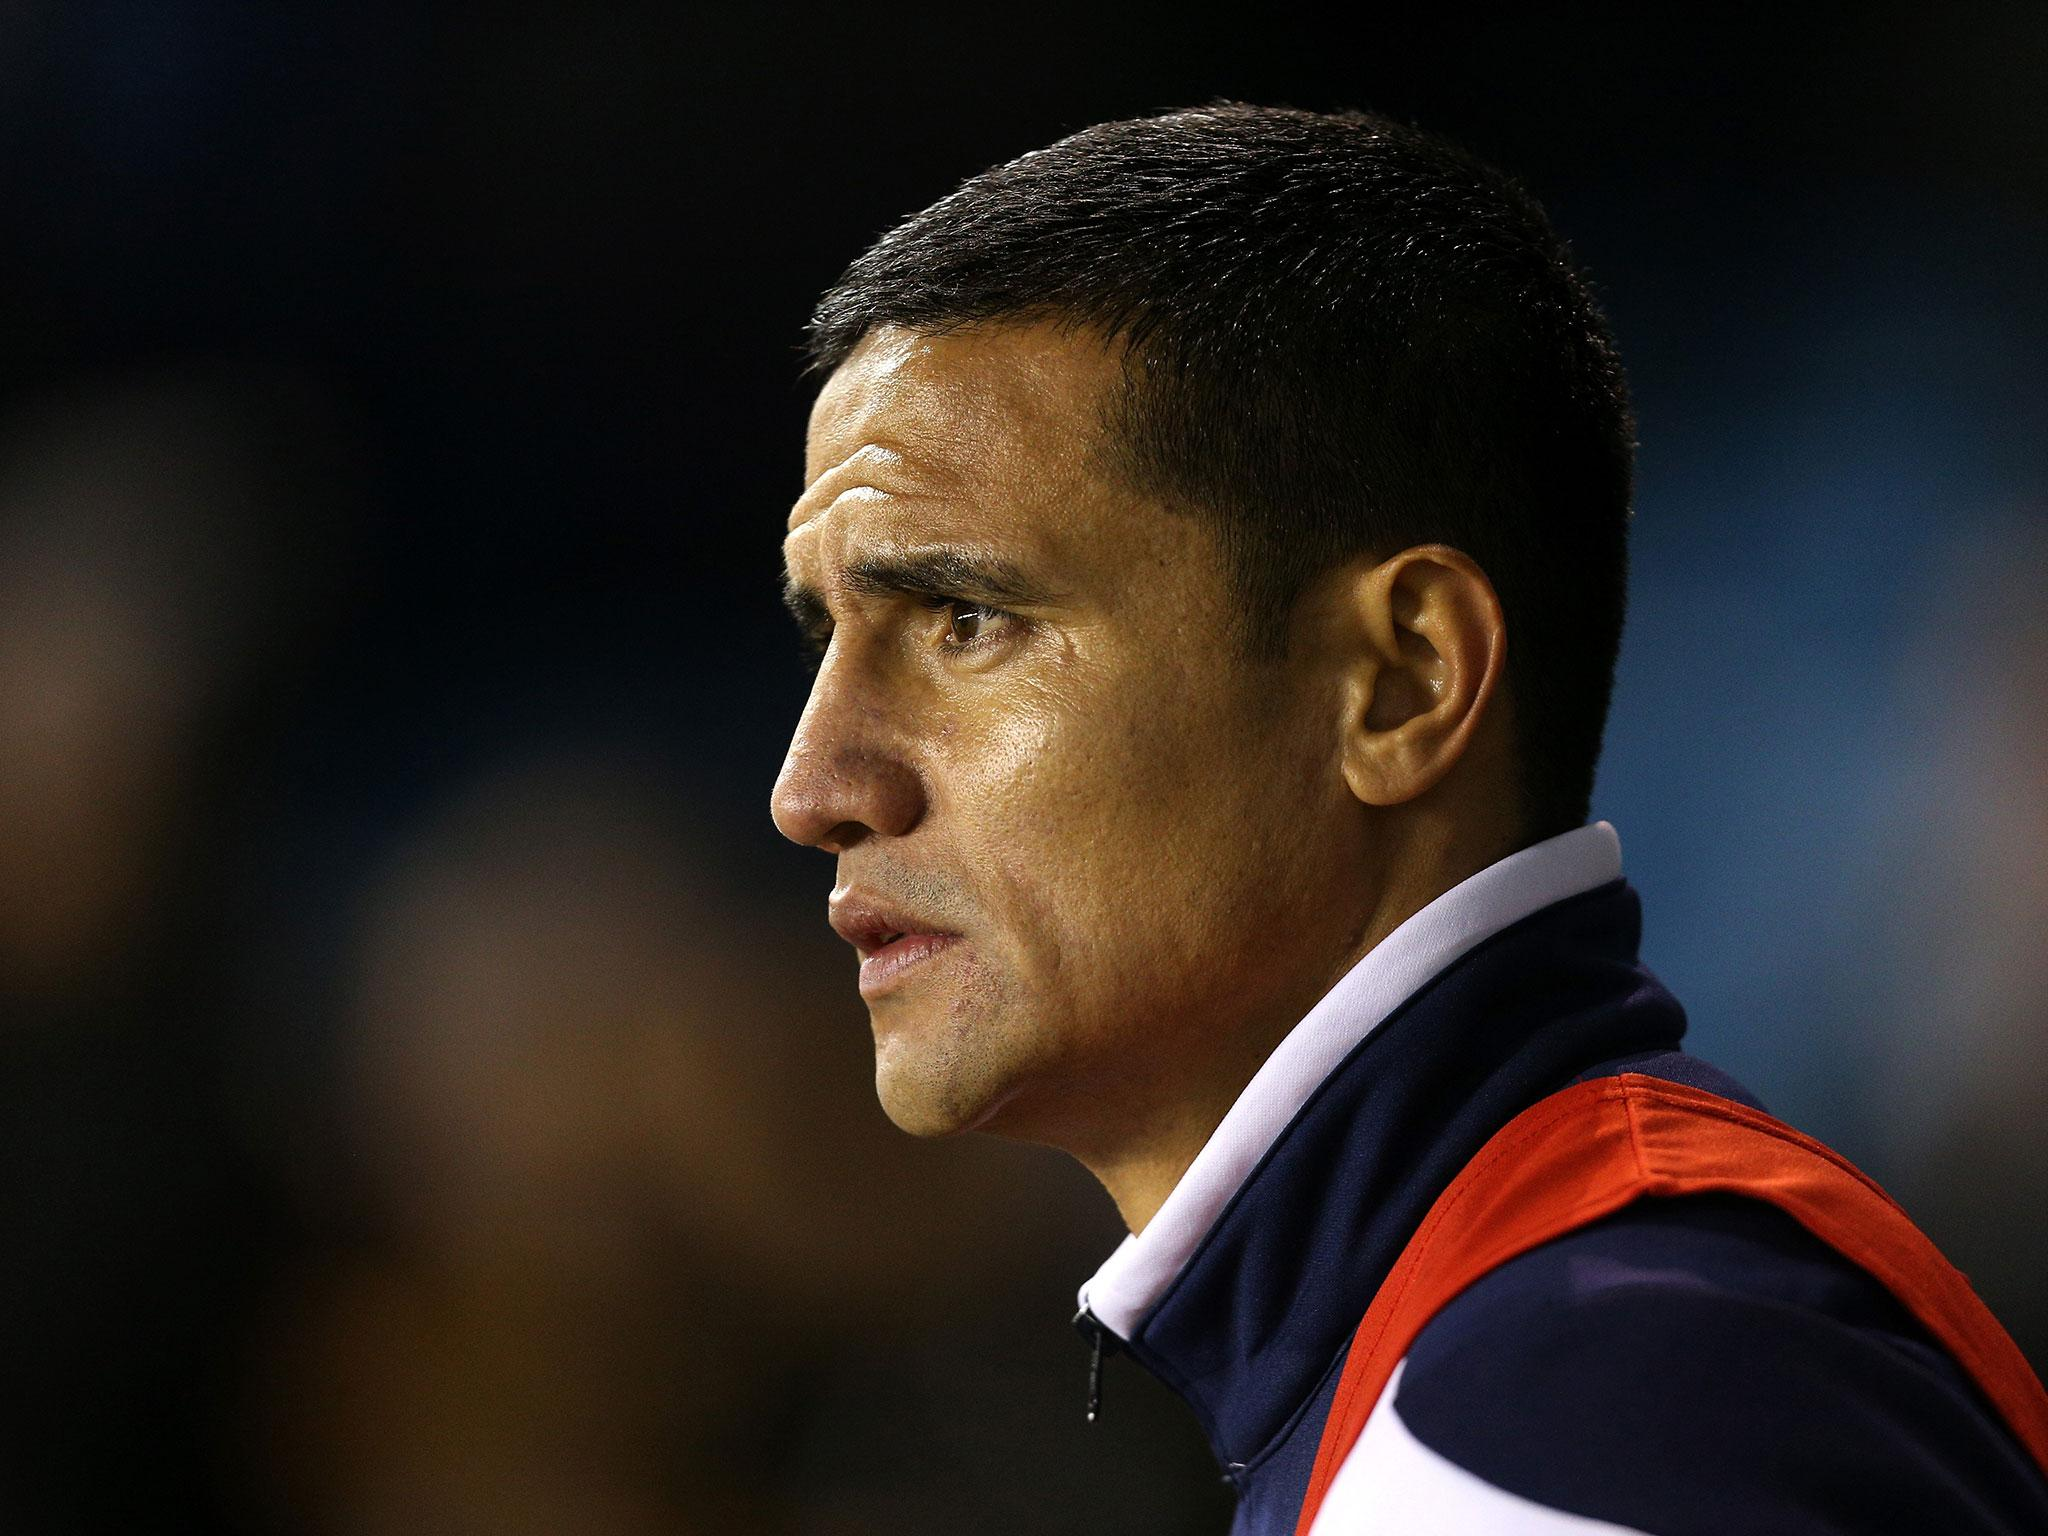 Tim Cahill 'massively' helping Millwall off the field as they push for play-off spot, says Jake Cooper